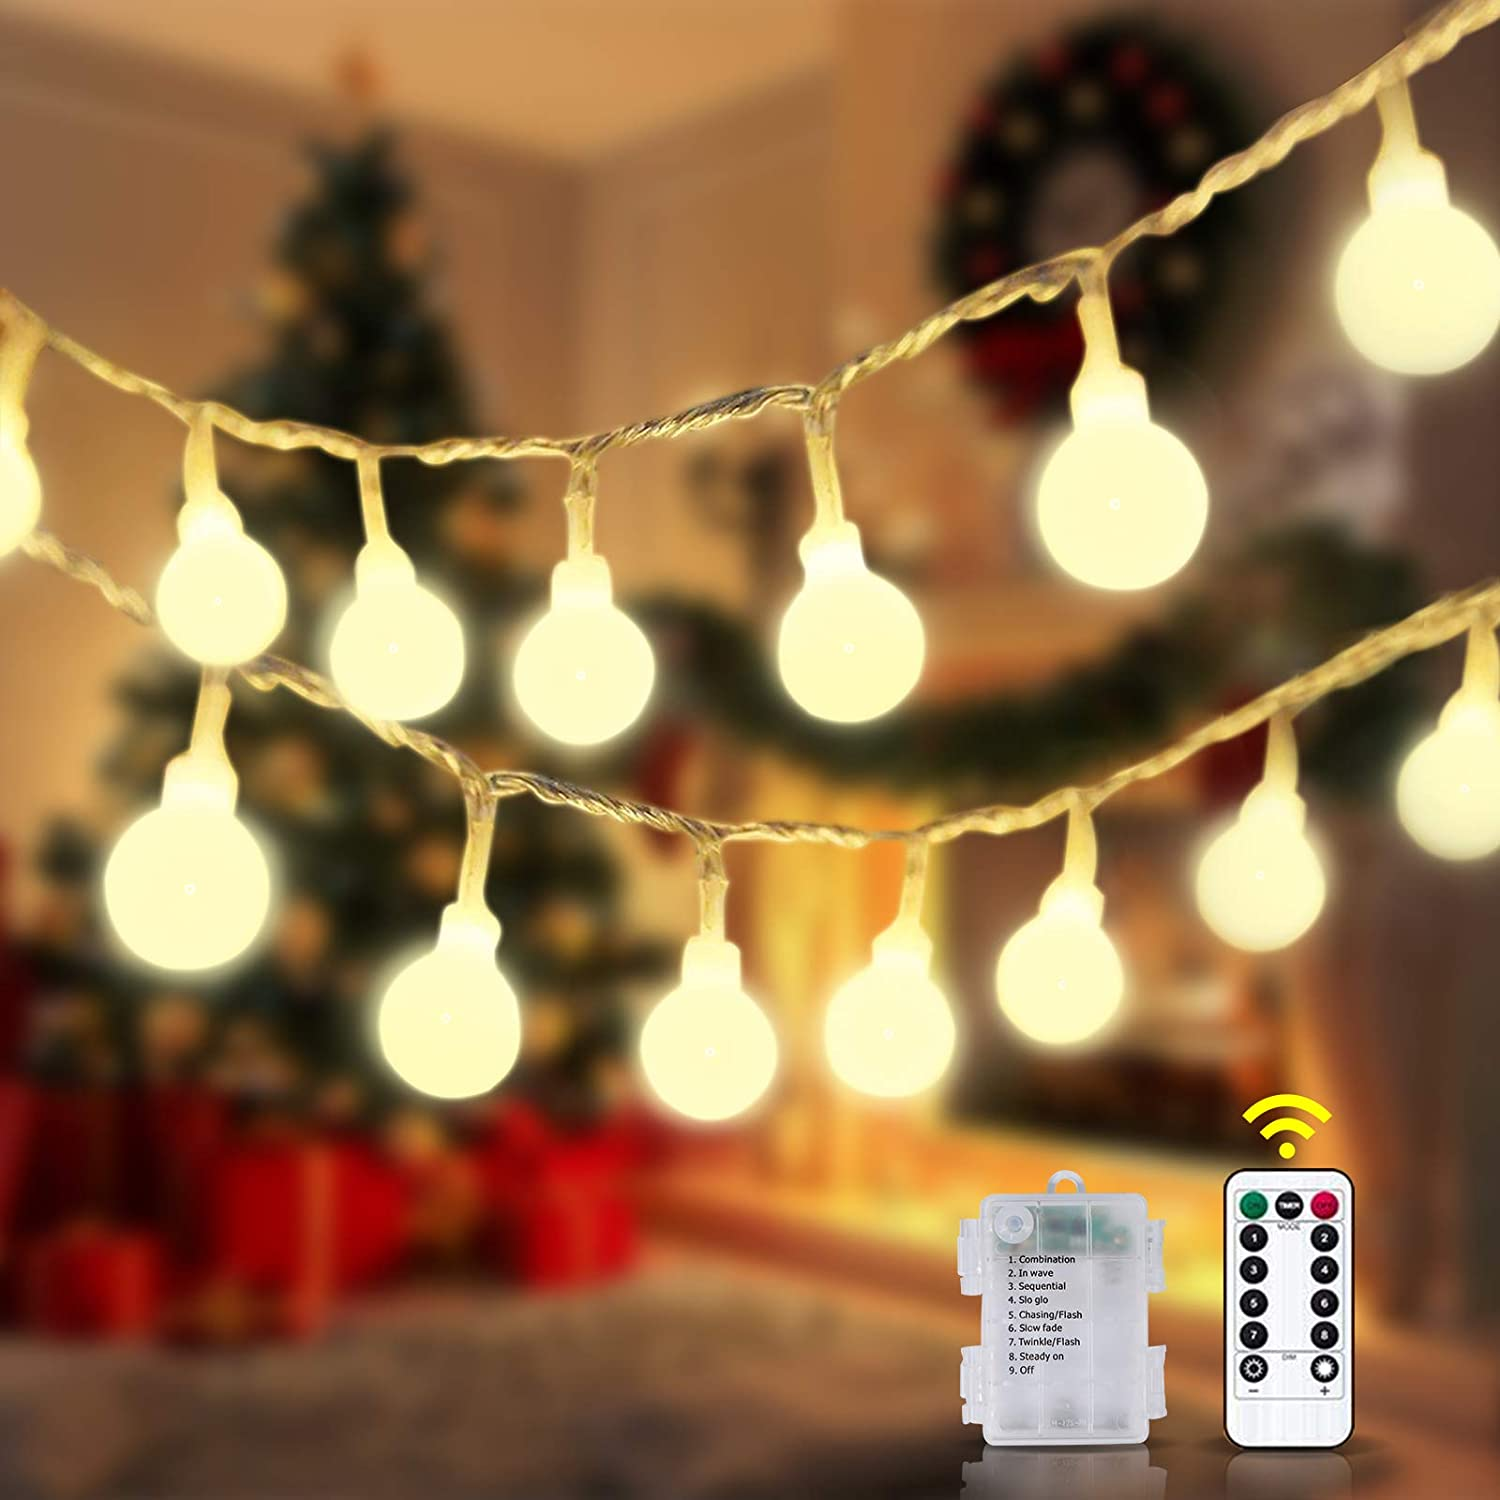 E-POWIND 80 LED String Lights with Remote Control, 8 Modes Fairy Light with Timer, Battery Operated Waterproof Christmas Tree Lighting Decor for Bedroom Wedding Party Backdrop - Warm White, 33 Feet